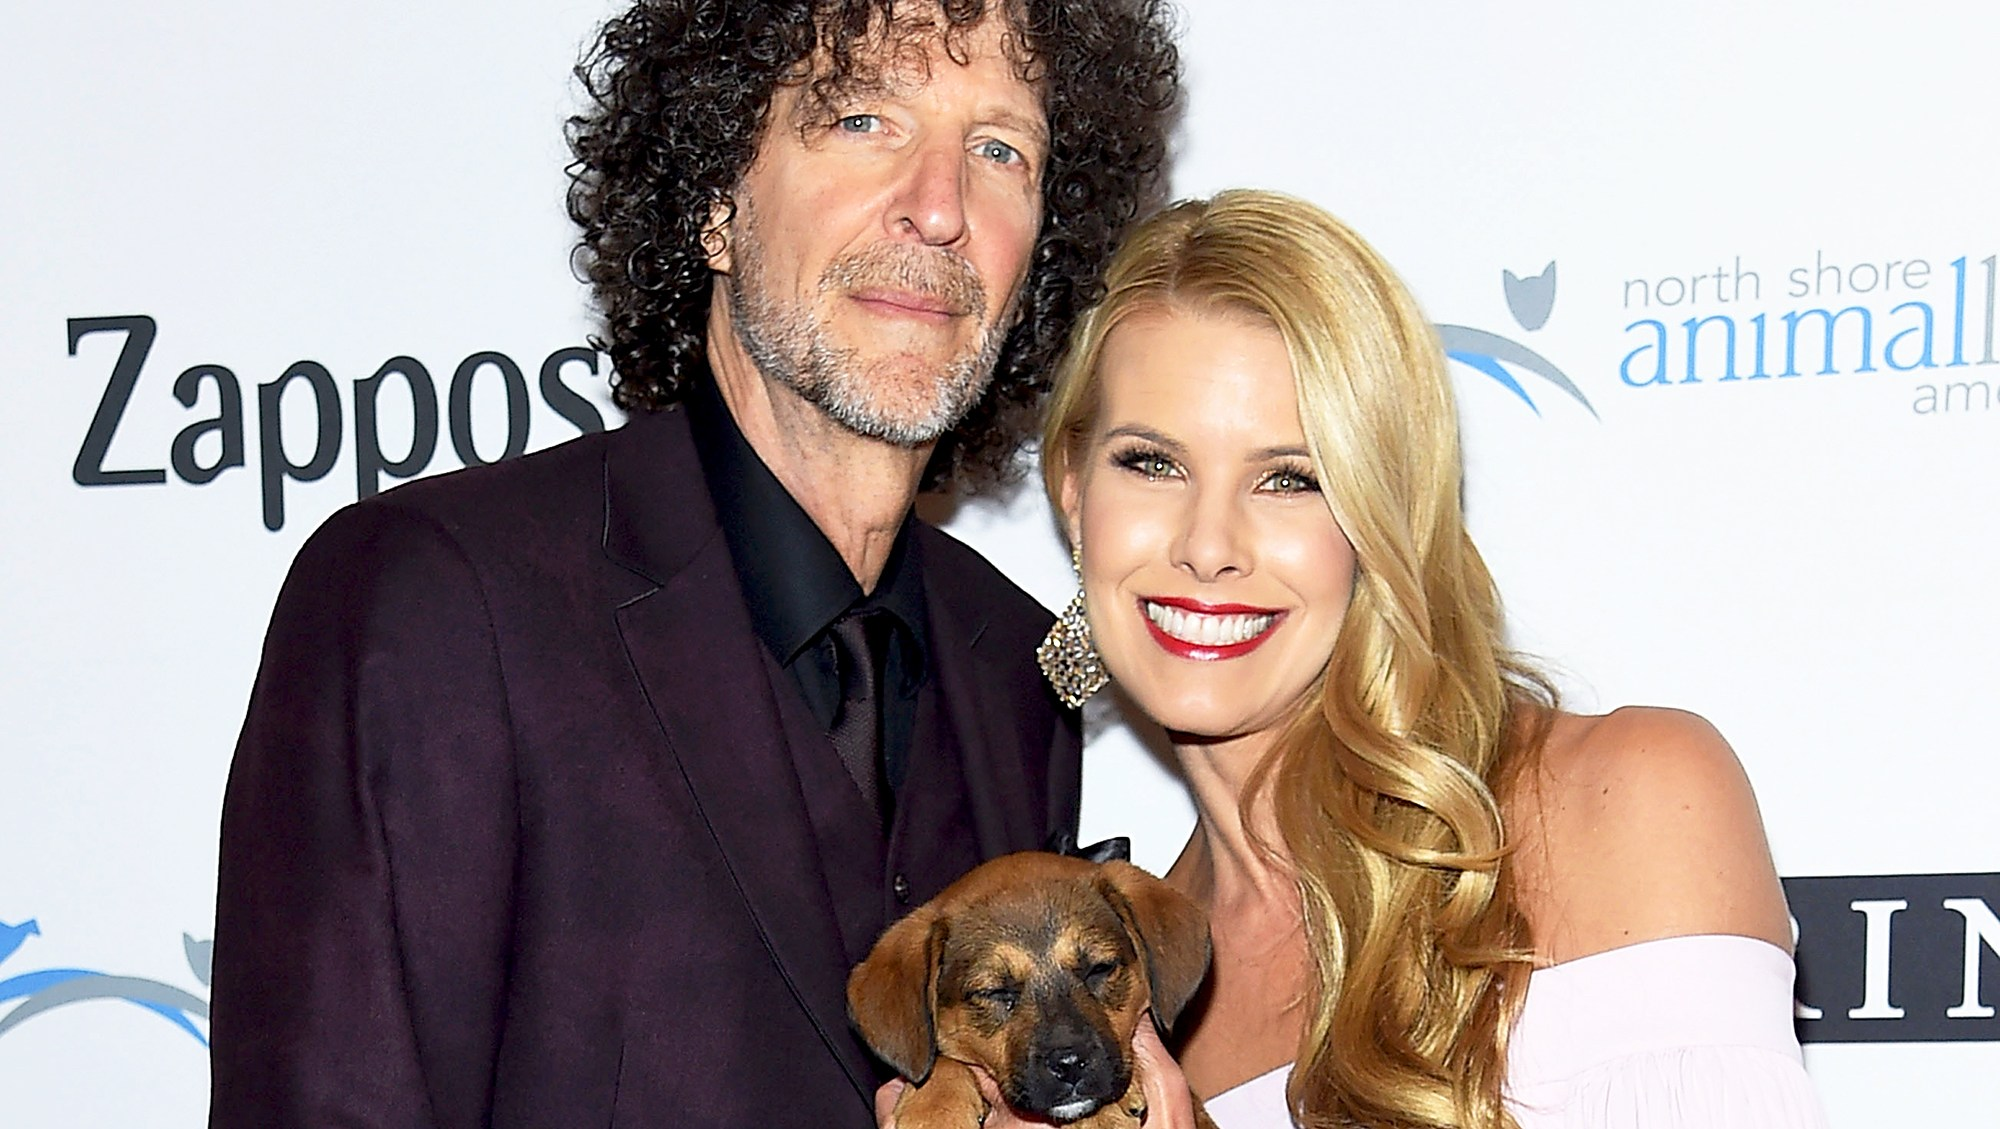 Howard Stern and Beth Ostrosky attend the 2017 North Shore Animal League America Gala at Grand Hyatt New York on December 1, 2017 in New York City.